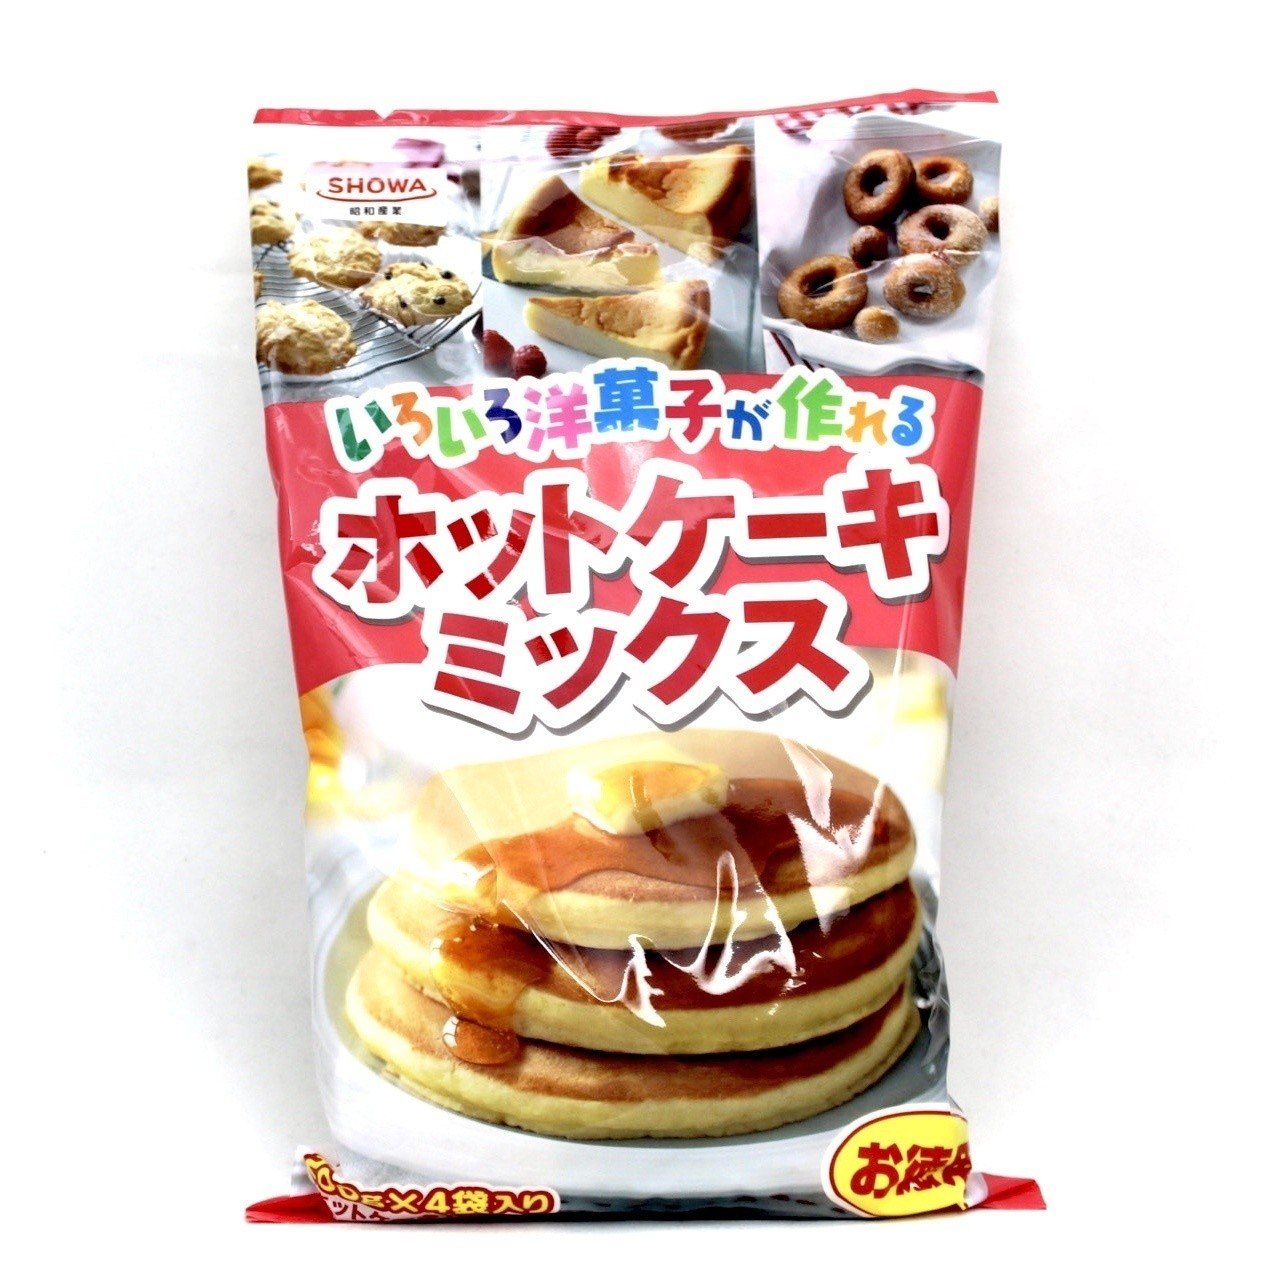 SHOWA HOT CAKE MIX 800g